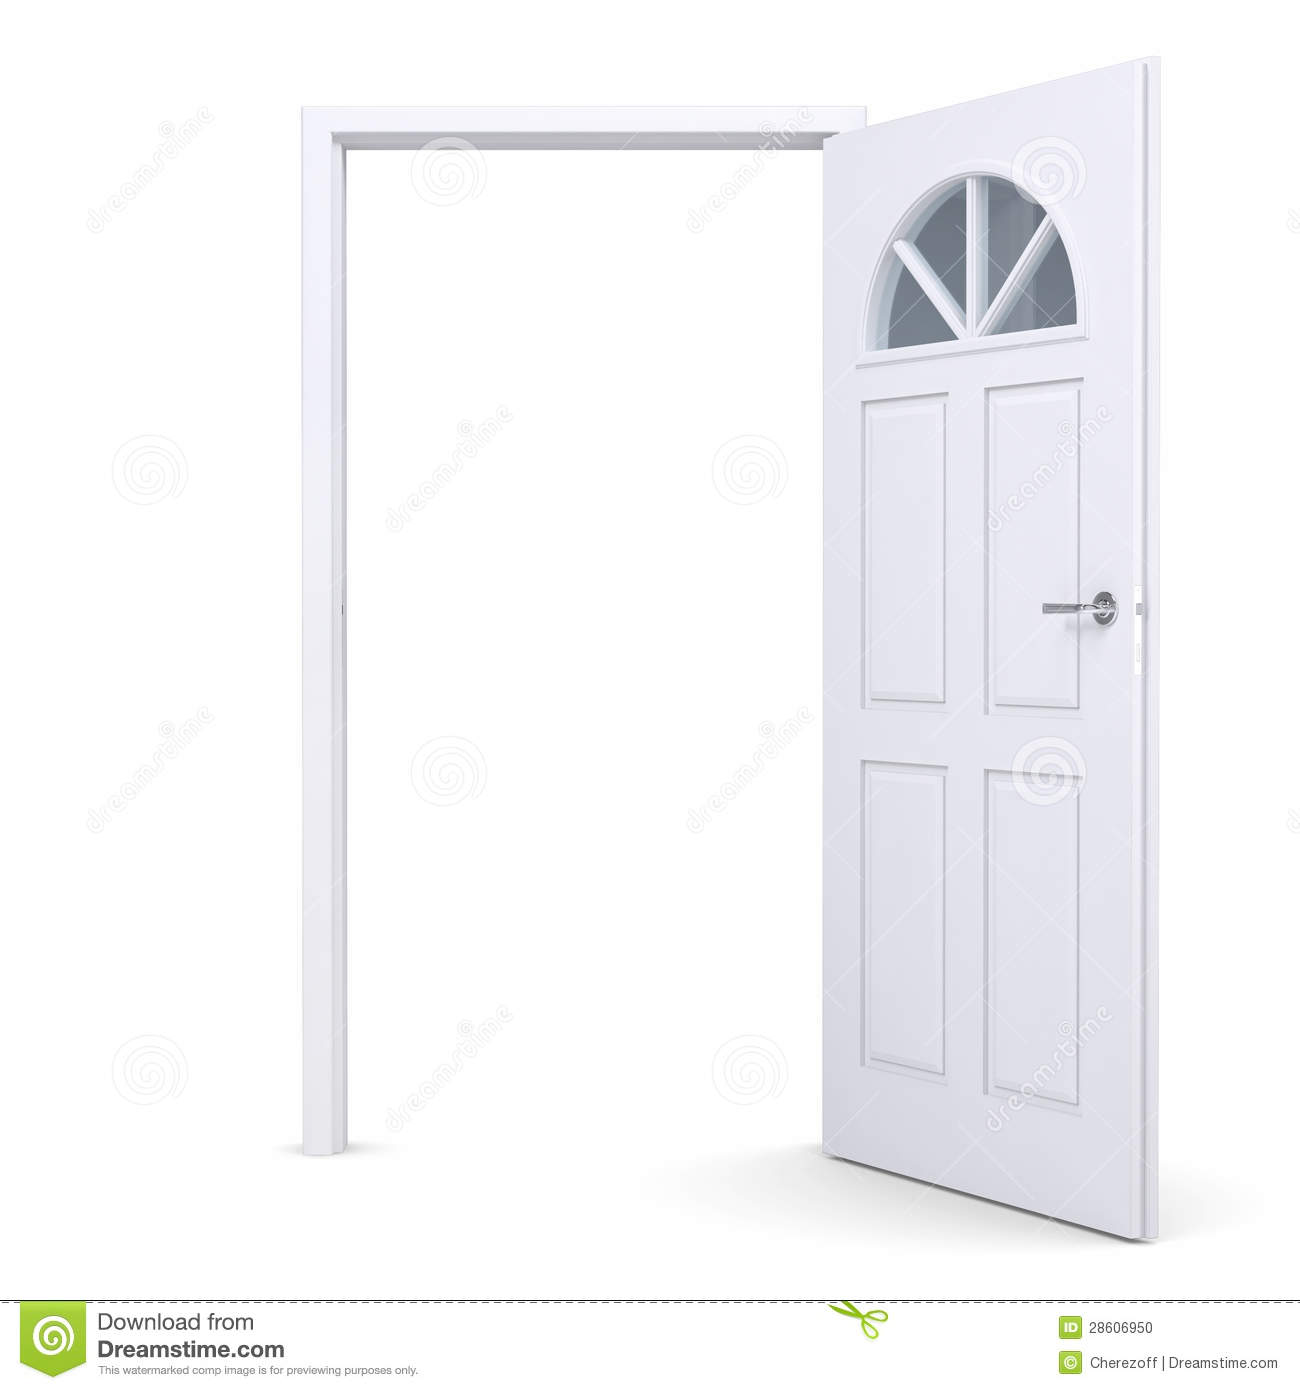 Porte ouverte blanche illustration stock illustration du for Porte ouverte